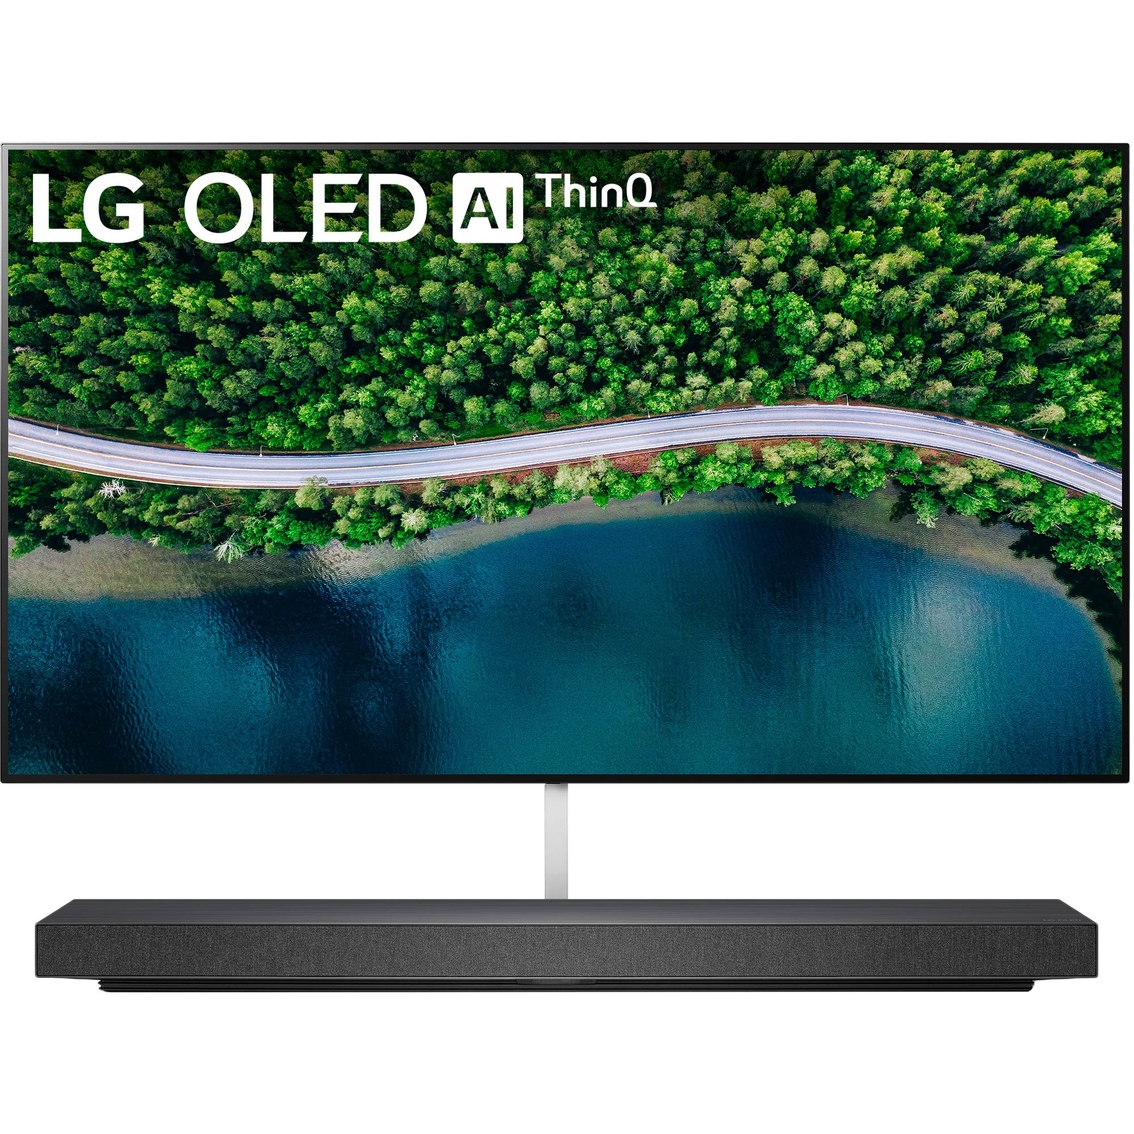 Lg 65 In Wx Wallpaper 4k Uhd Hdr Oled Smart Tv With Ai Thinq Oled65wxpua Tvs Electronics Shop The Exchange